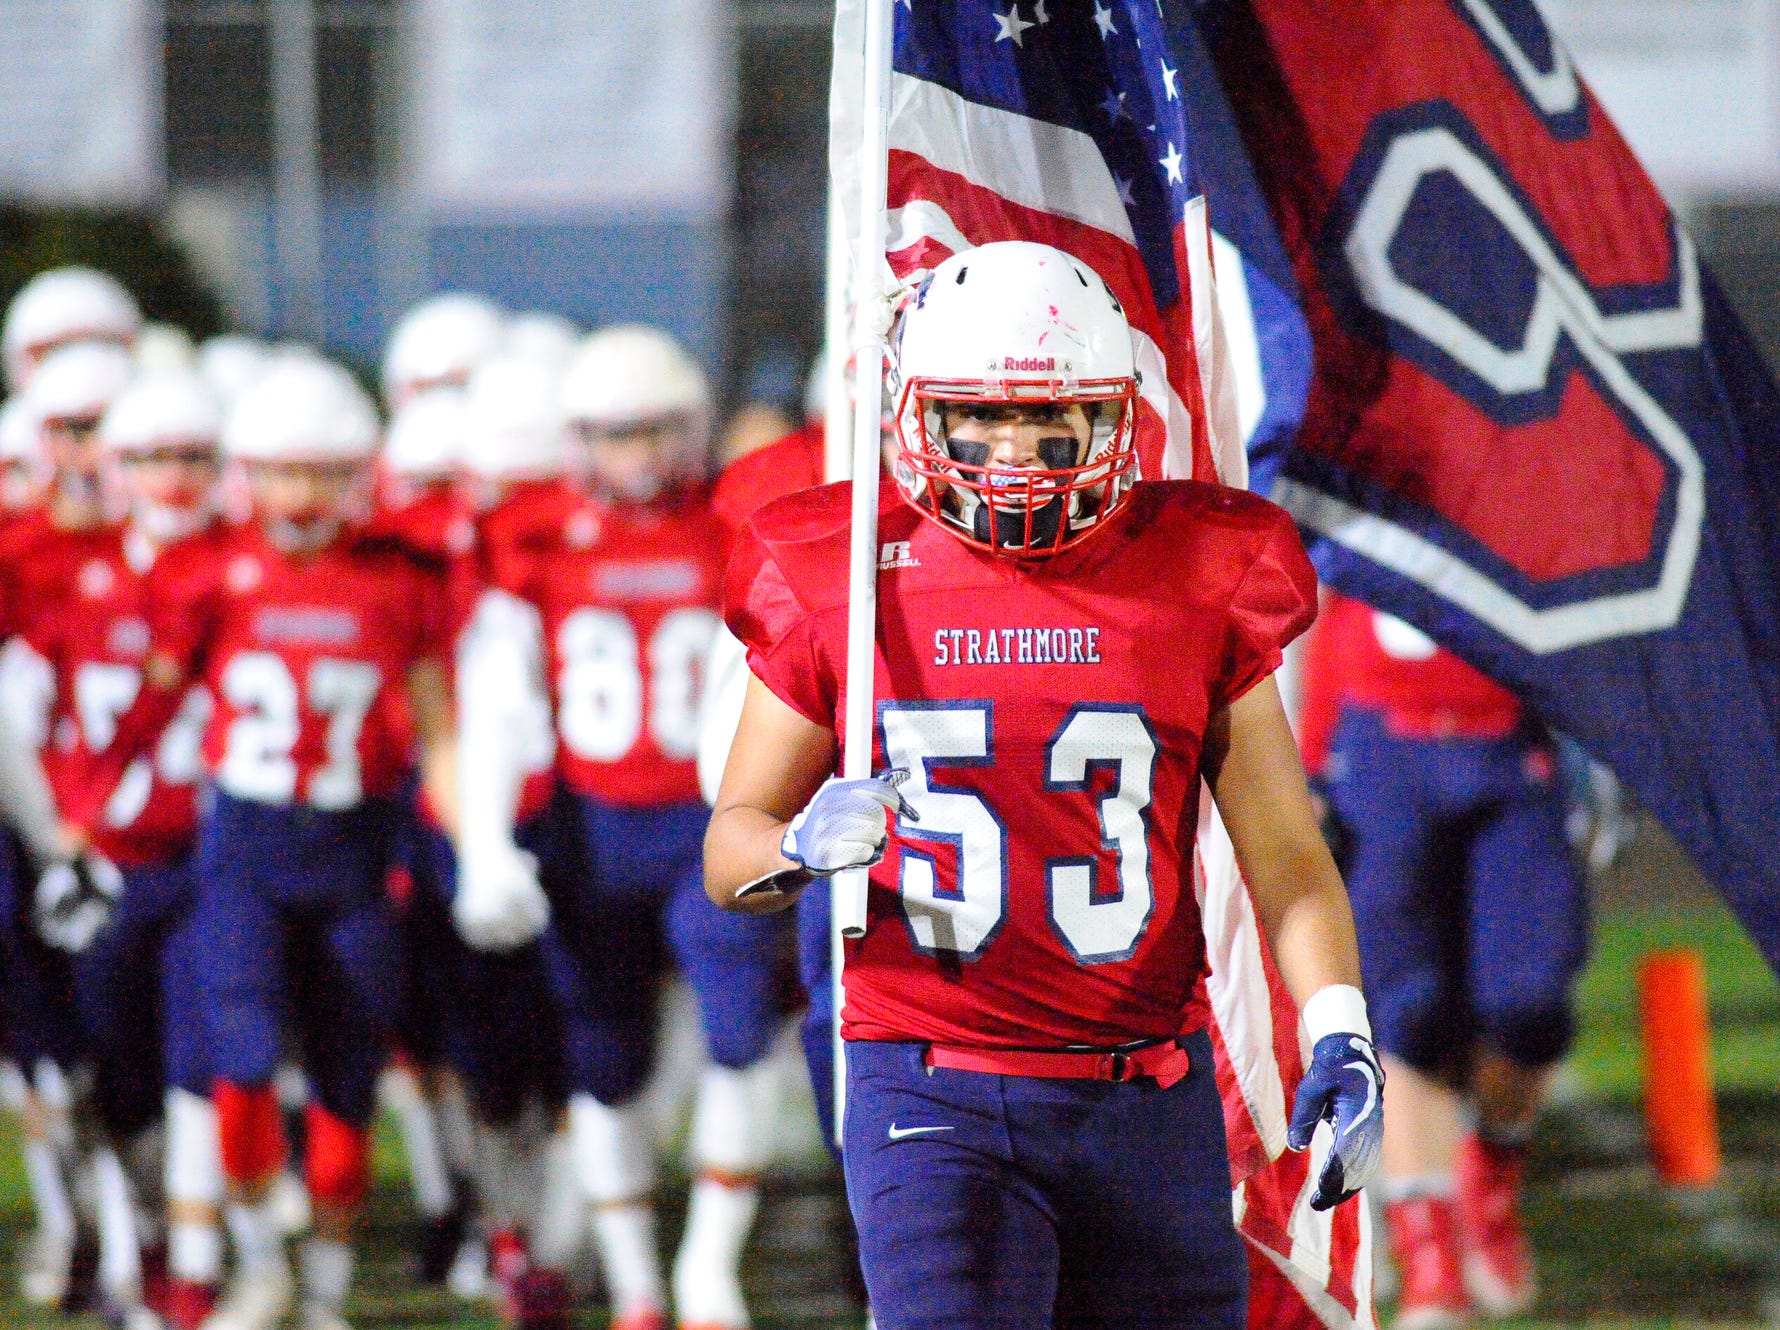 Strathmore on a roll heading into state title game